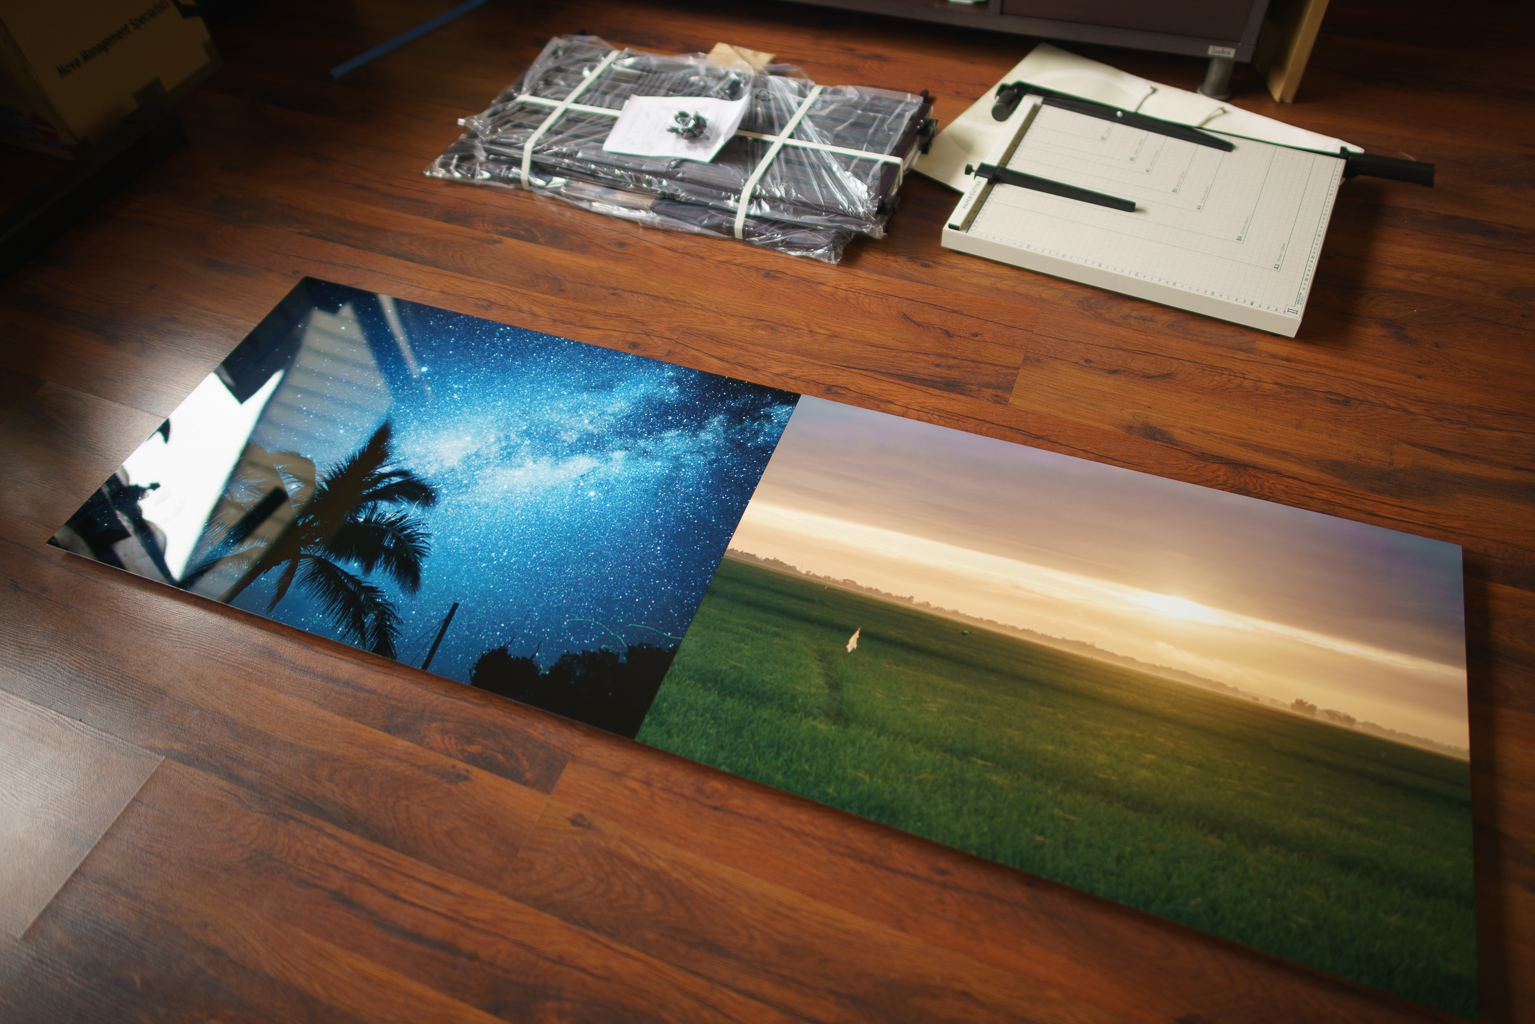 My two newest 20x30 inch metal prints